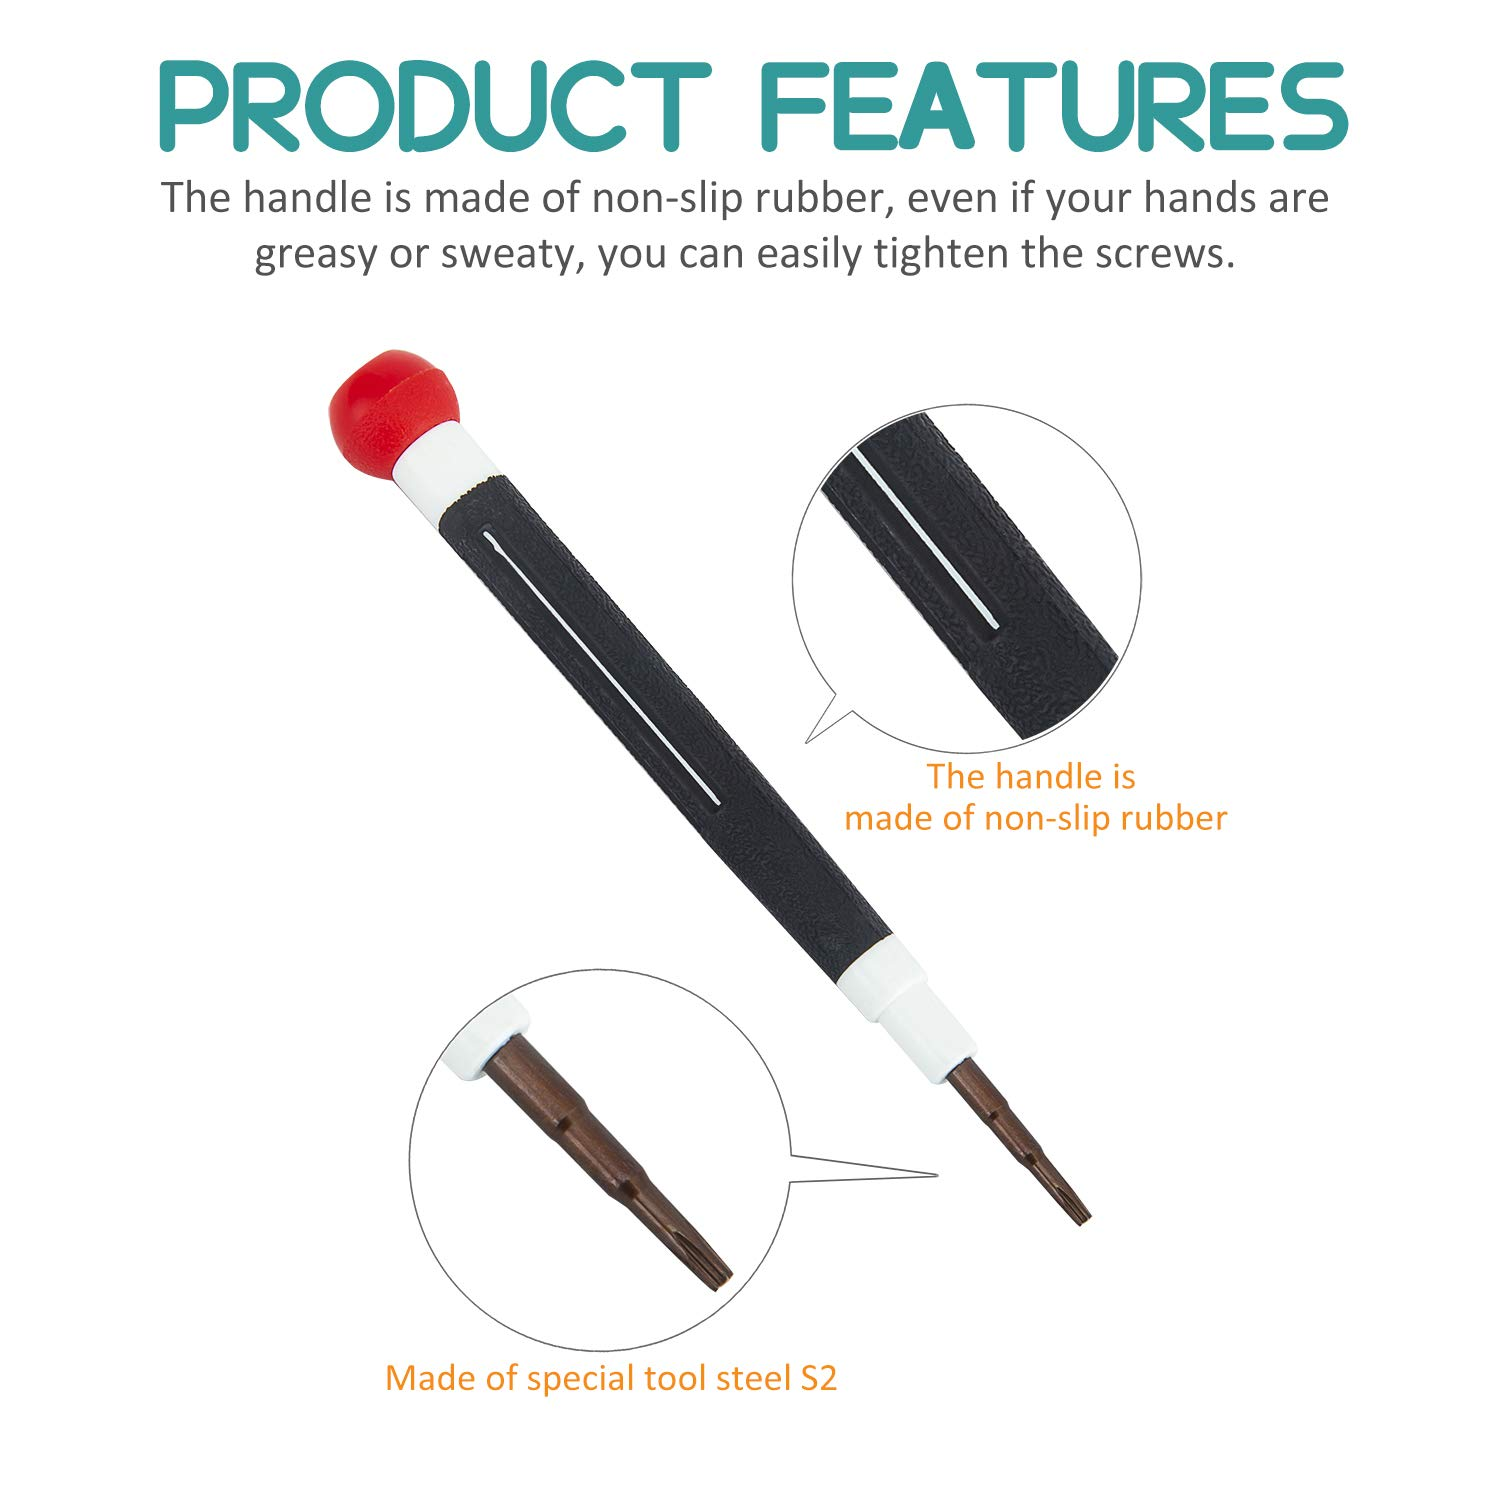 6 Piece Precision Screwdriver Set Rdeer Multifunction Magnetic Electronic Repair Tool Kit For iPhone//iPad//Samsung Galaxy Series//Smartphone//Laptop//Cameras//Watch//Glasses Etc.